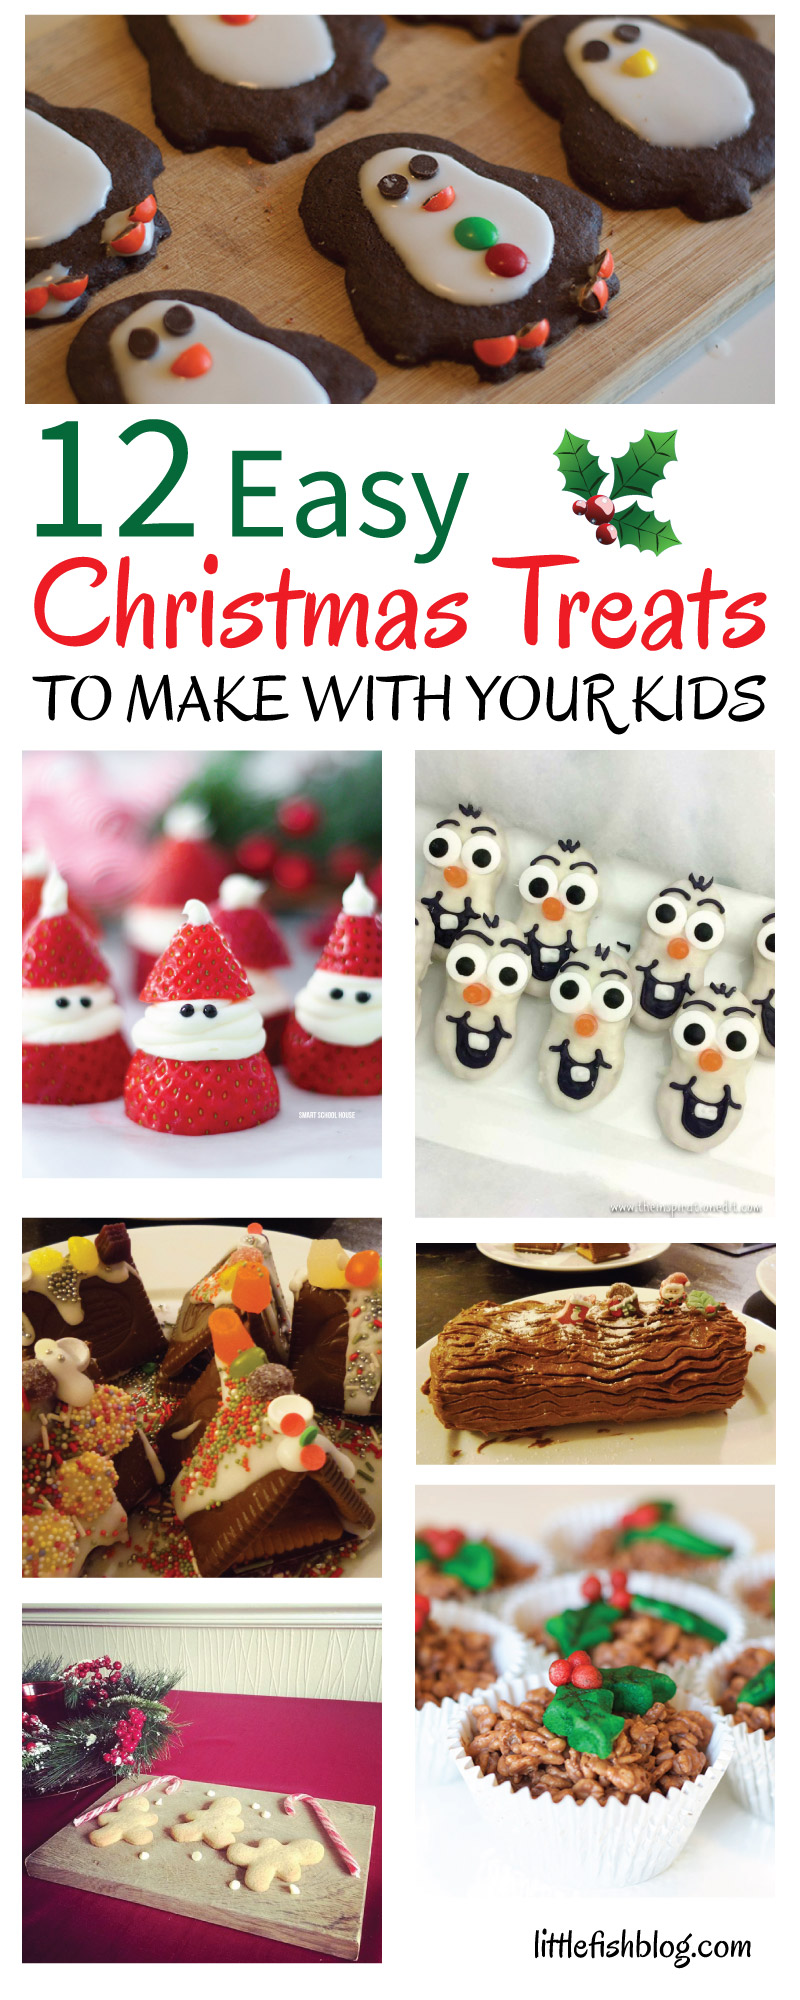 12 Easy Christmas Treats to Make with Your Kids - Little Fish